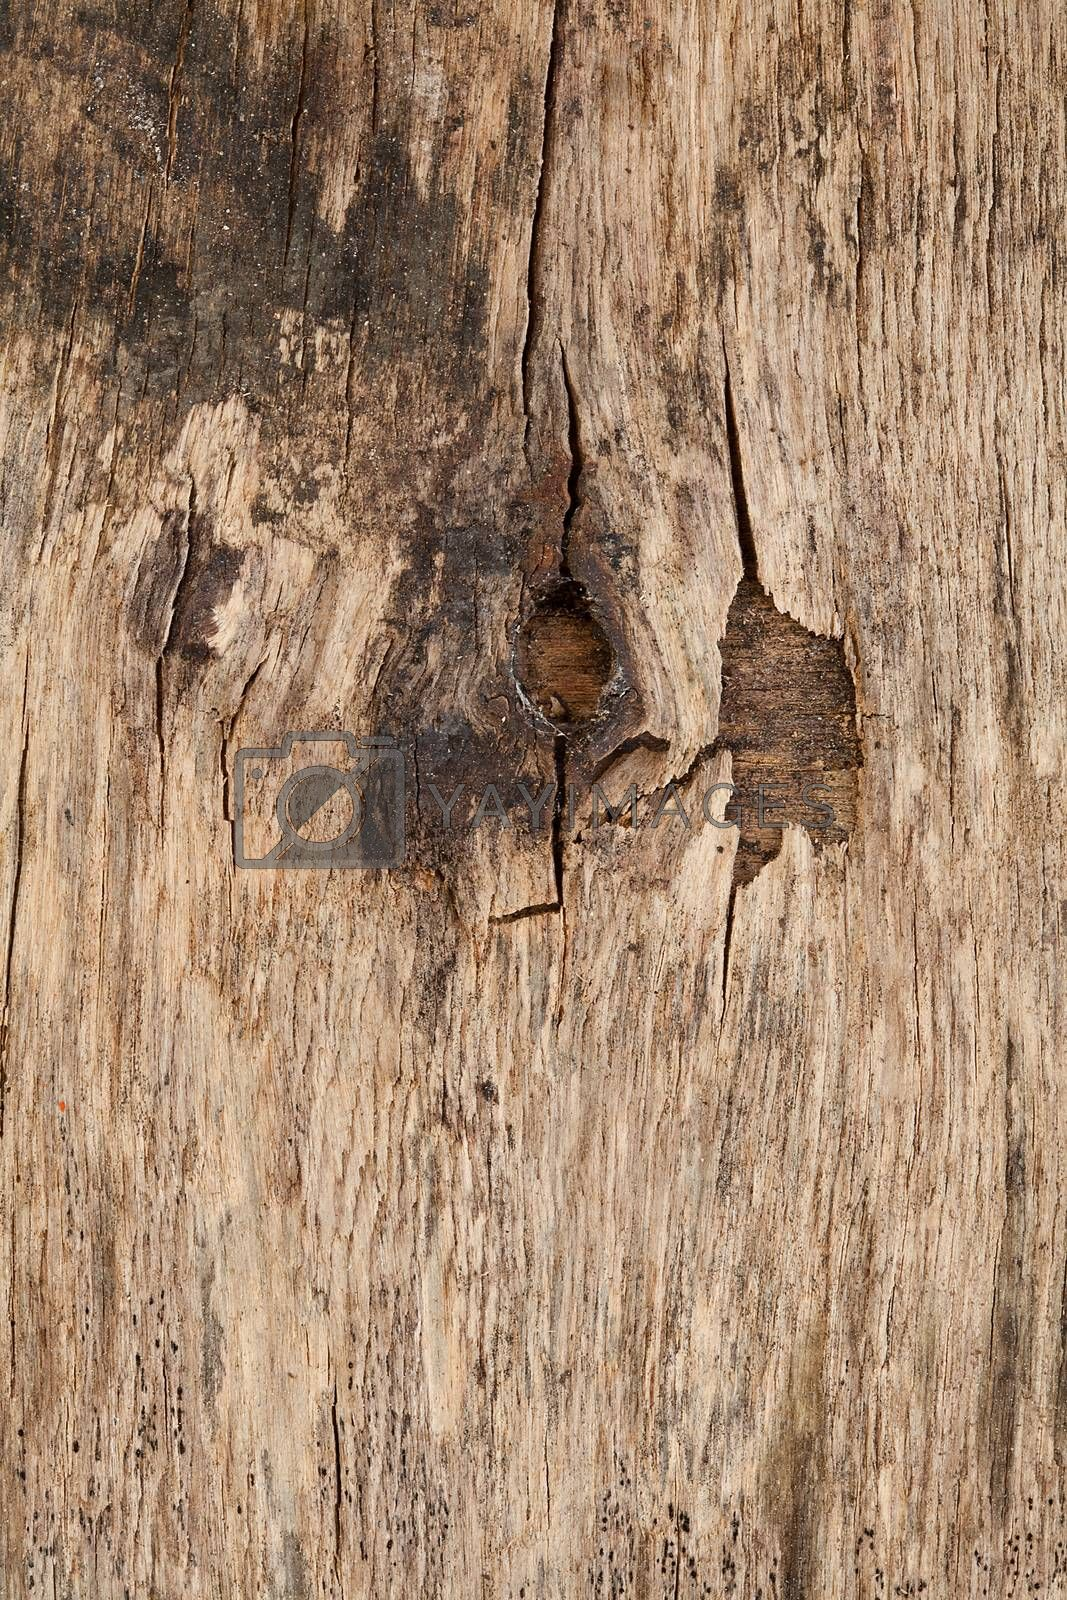 Close up of a wooden piece of hardwood